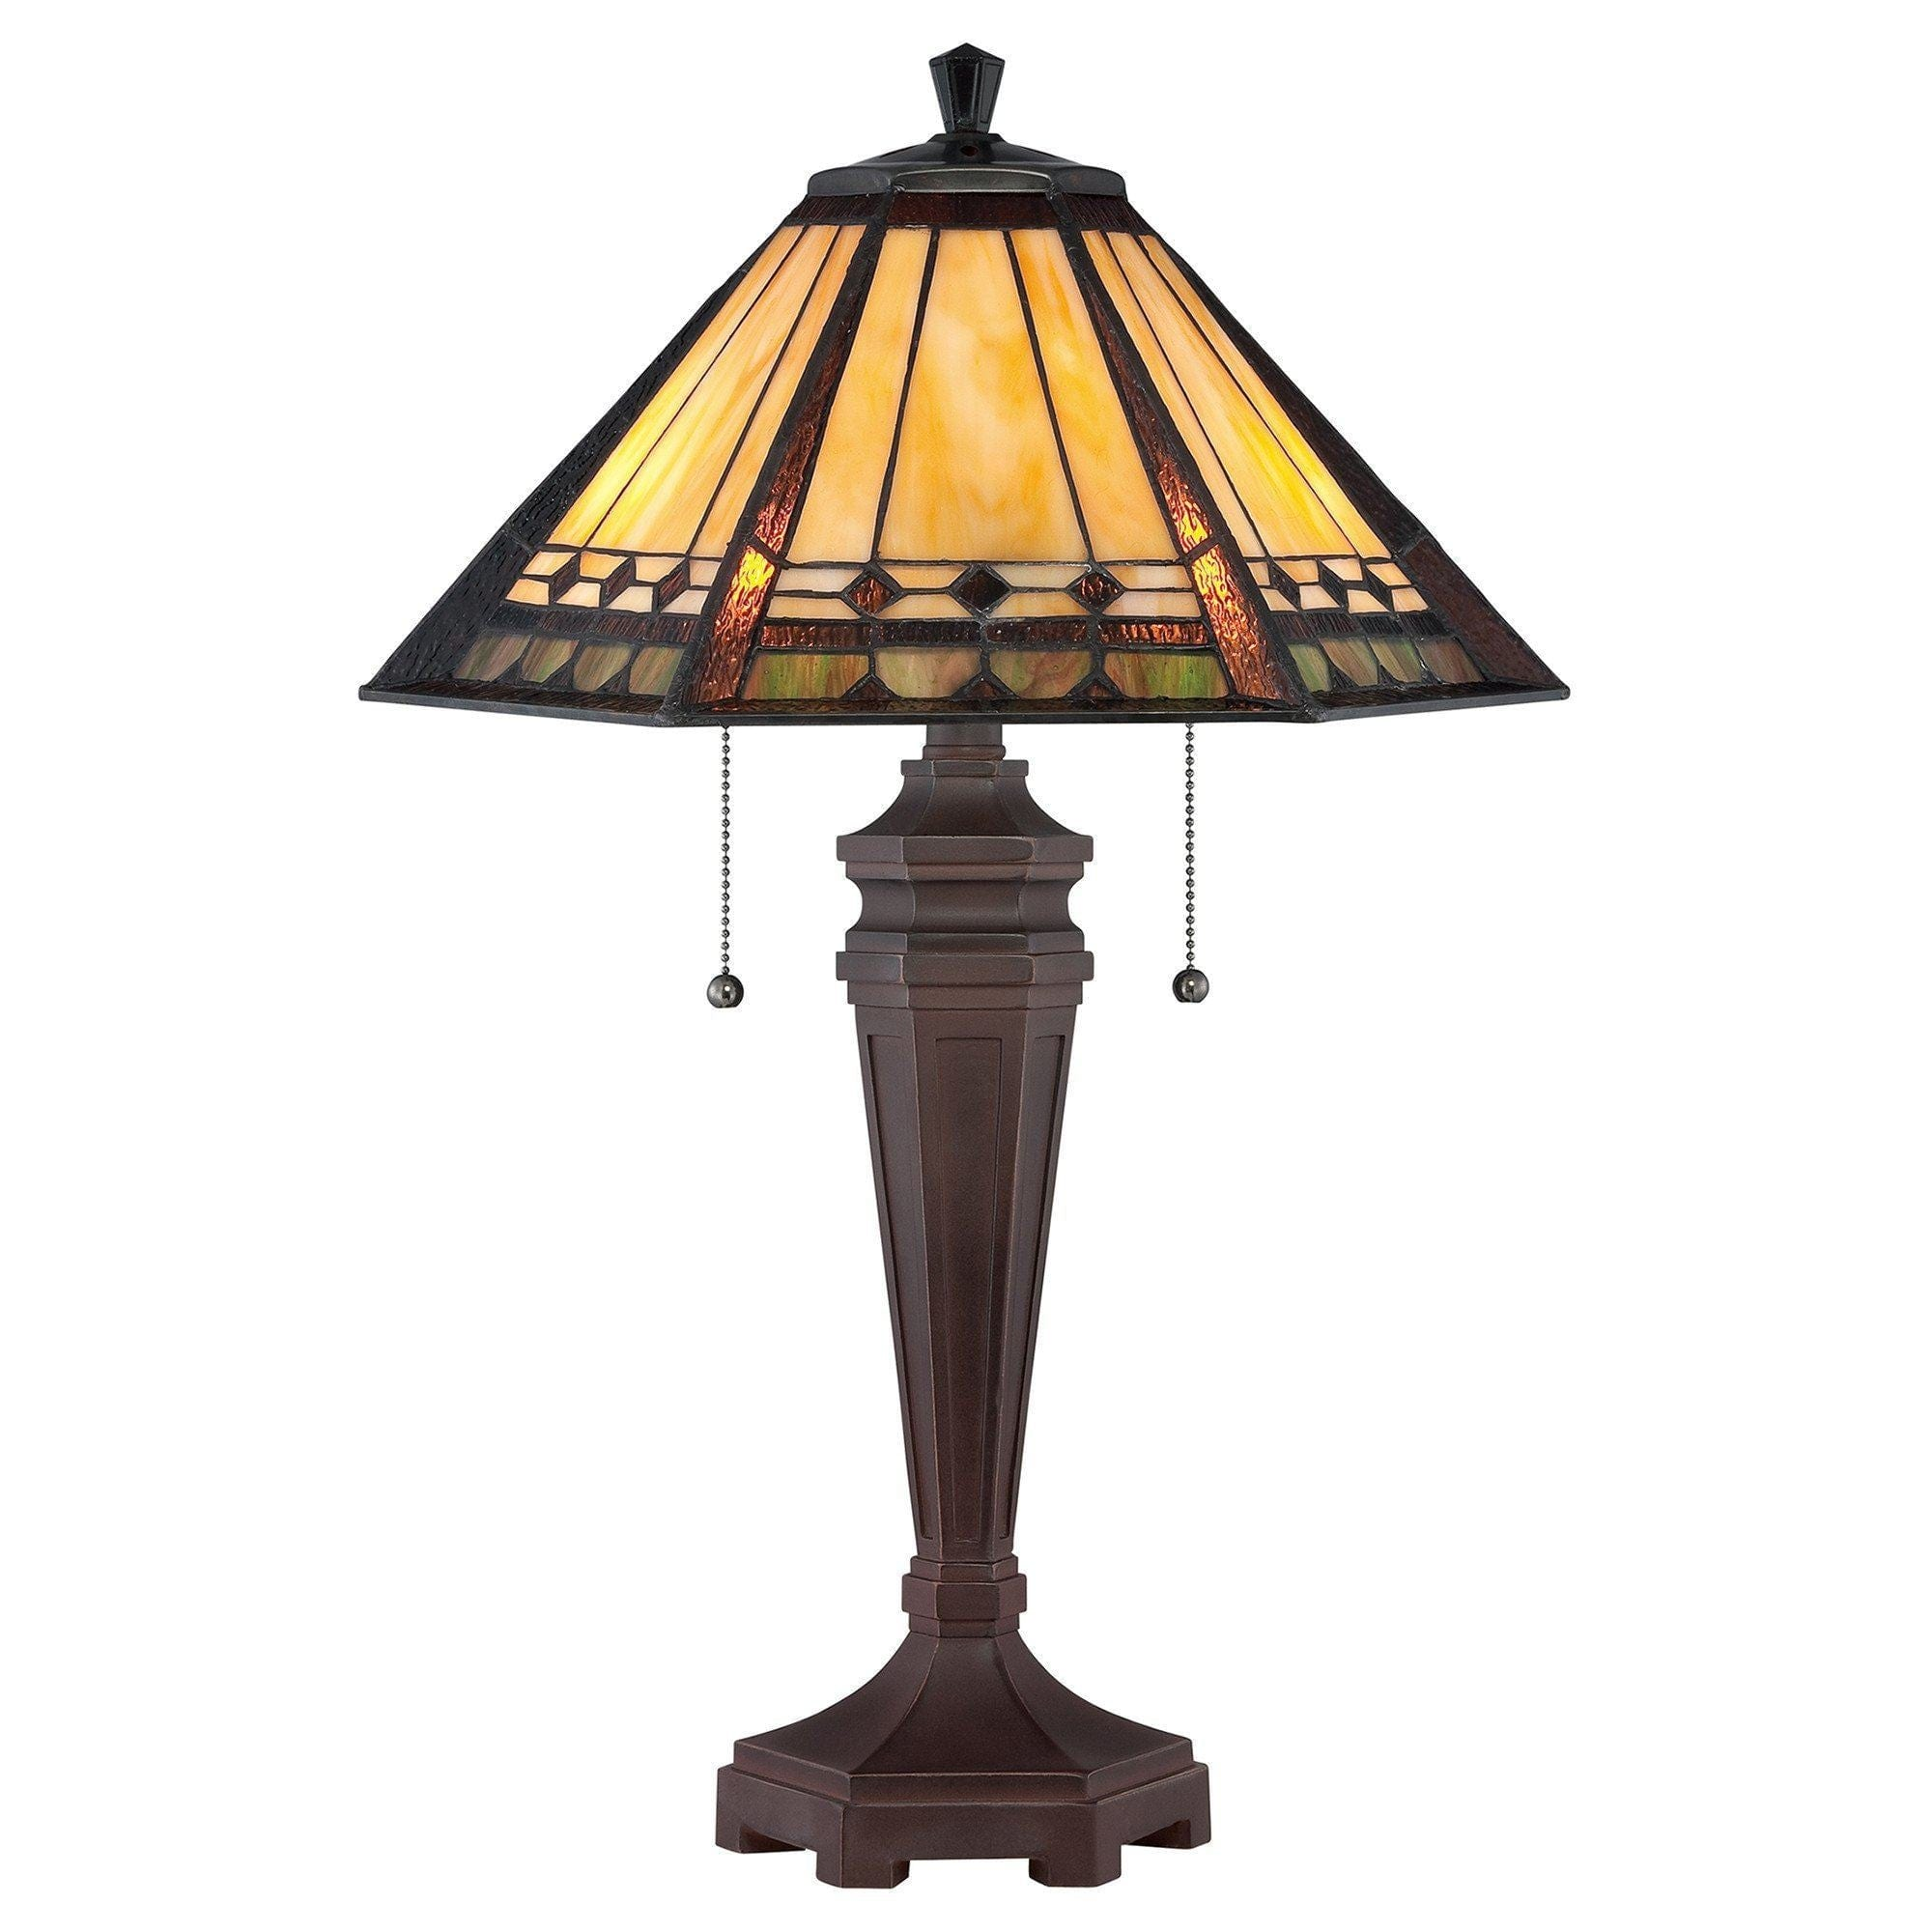 Large Tiffany Lamps - Quoizel Large Tiffany Arden Table Lamp QZ/ARDEN/TL